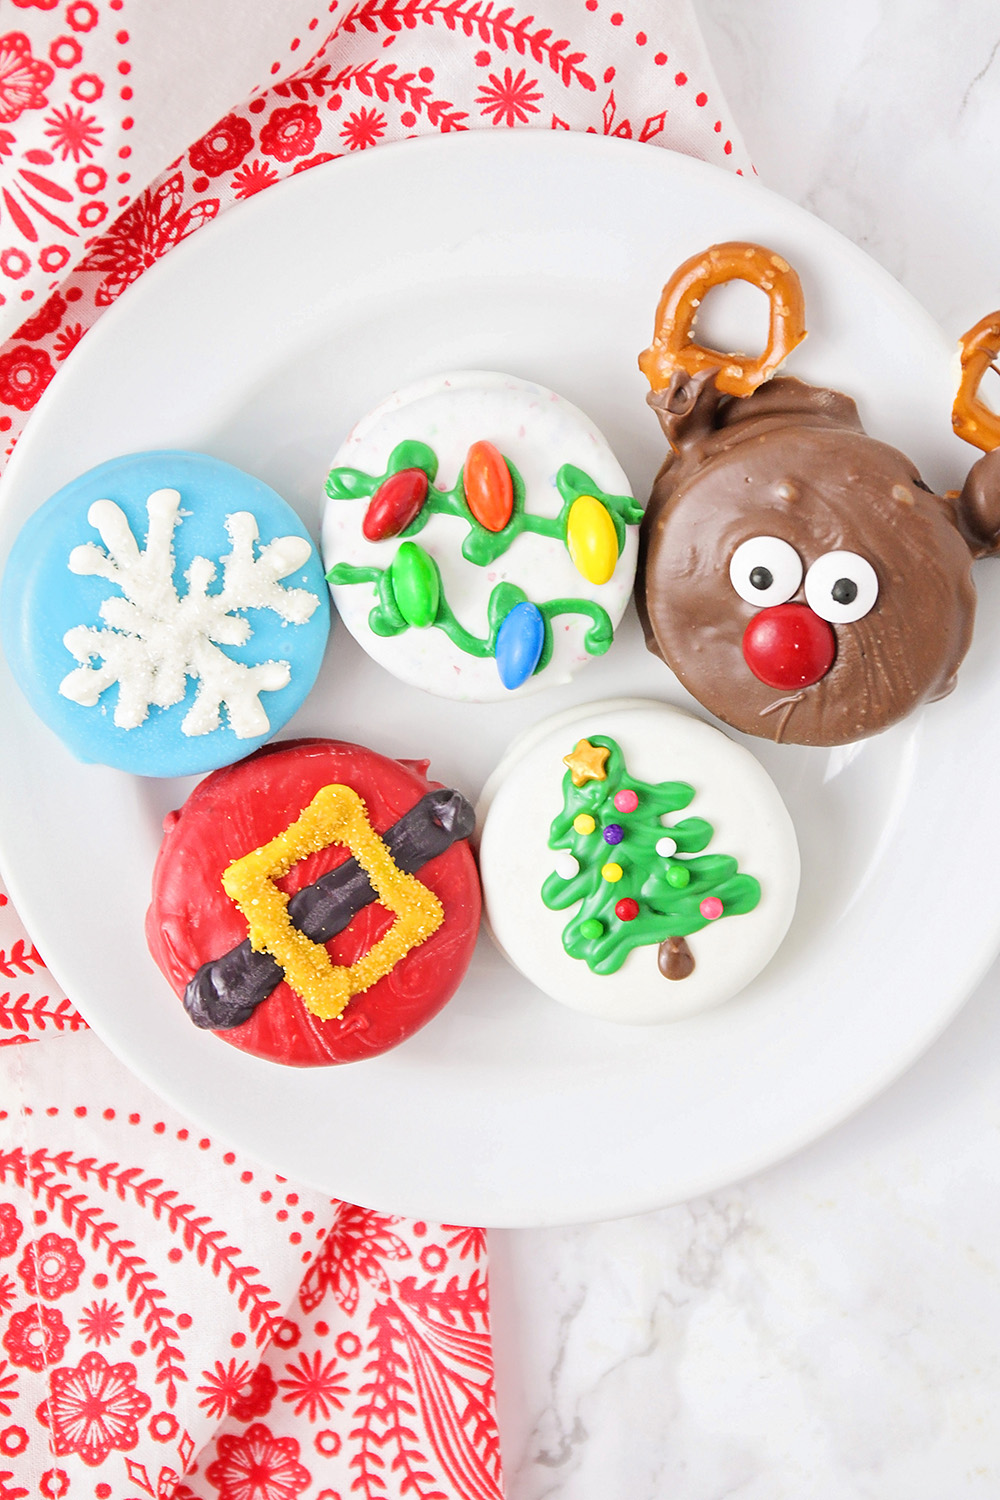 These Christmas Oreos are so festive and adorable, and perfect for gifting!